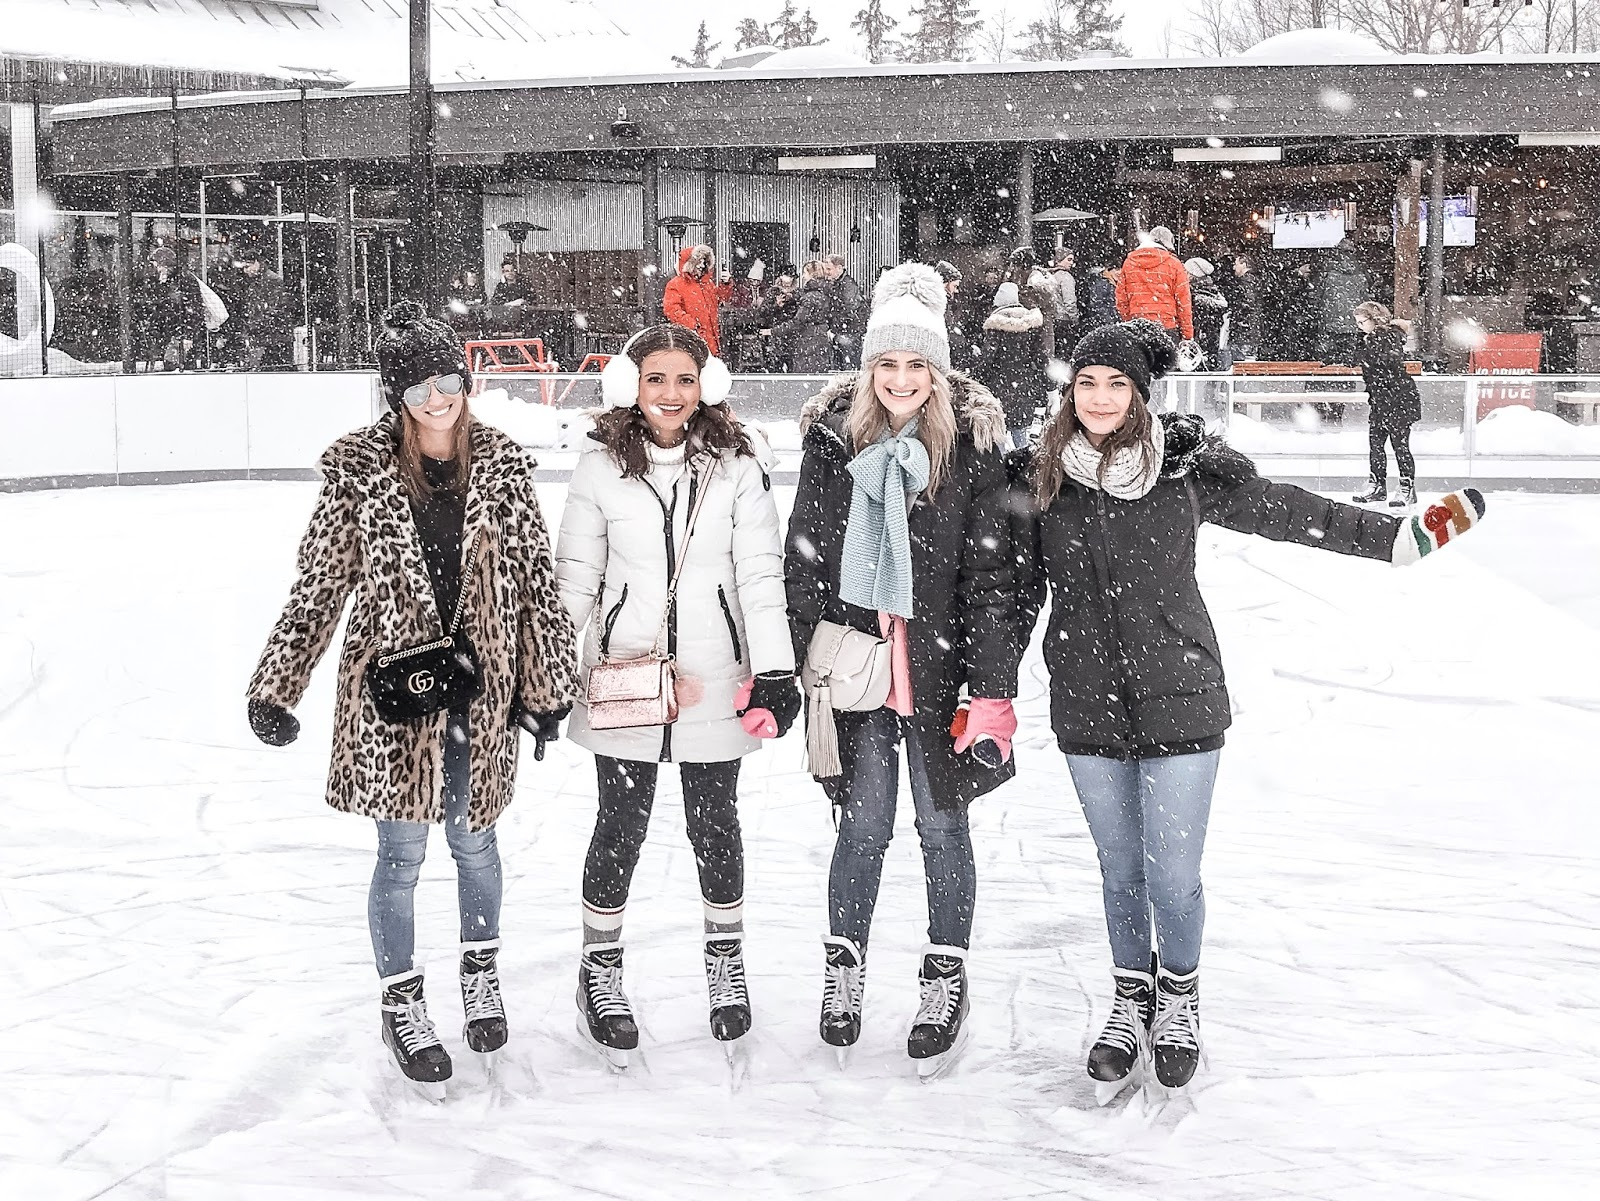 Bijuleni | How To Unwind at White Oaks Resort & Spa | Girls skating in style